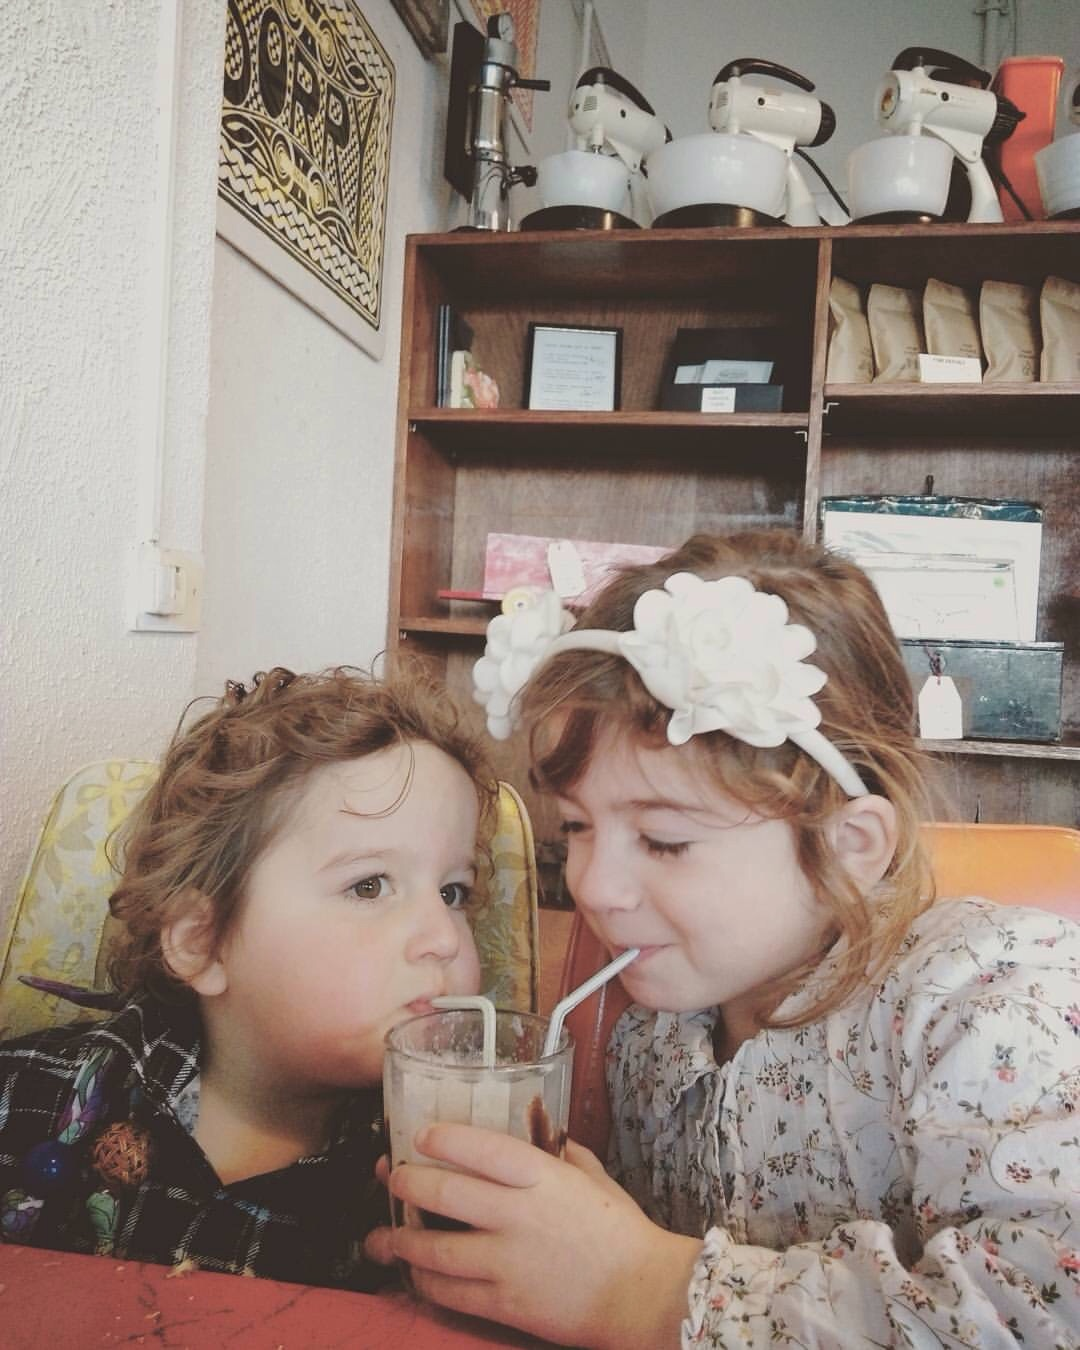 Sharing a shake at Happy Maree.